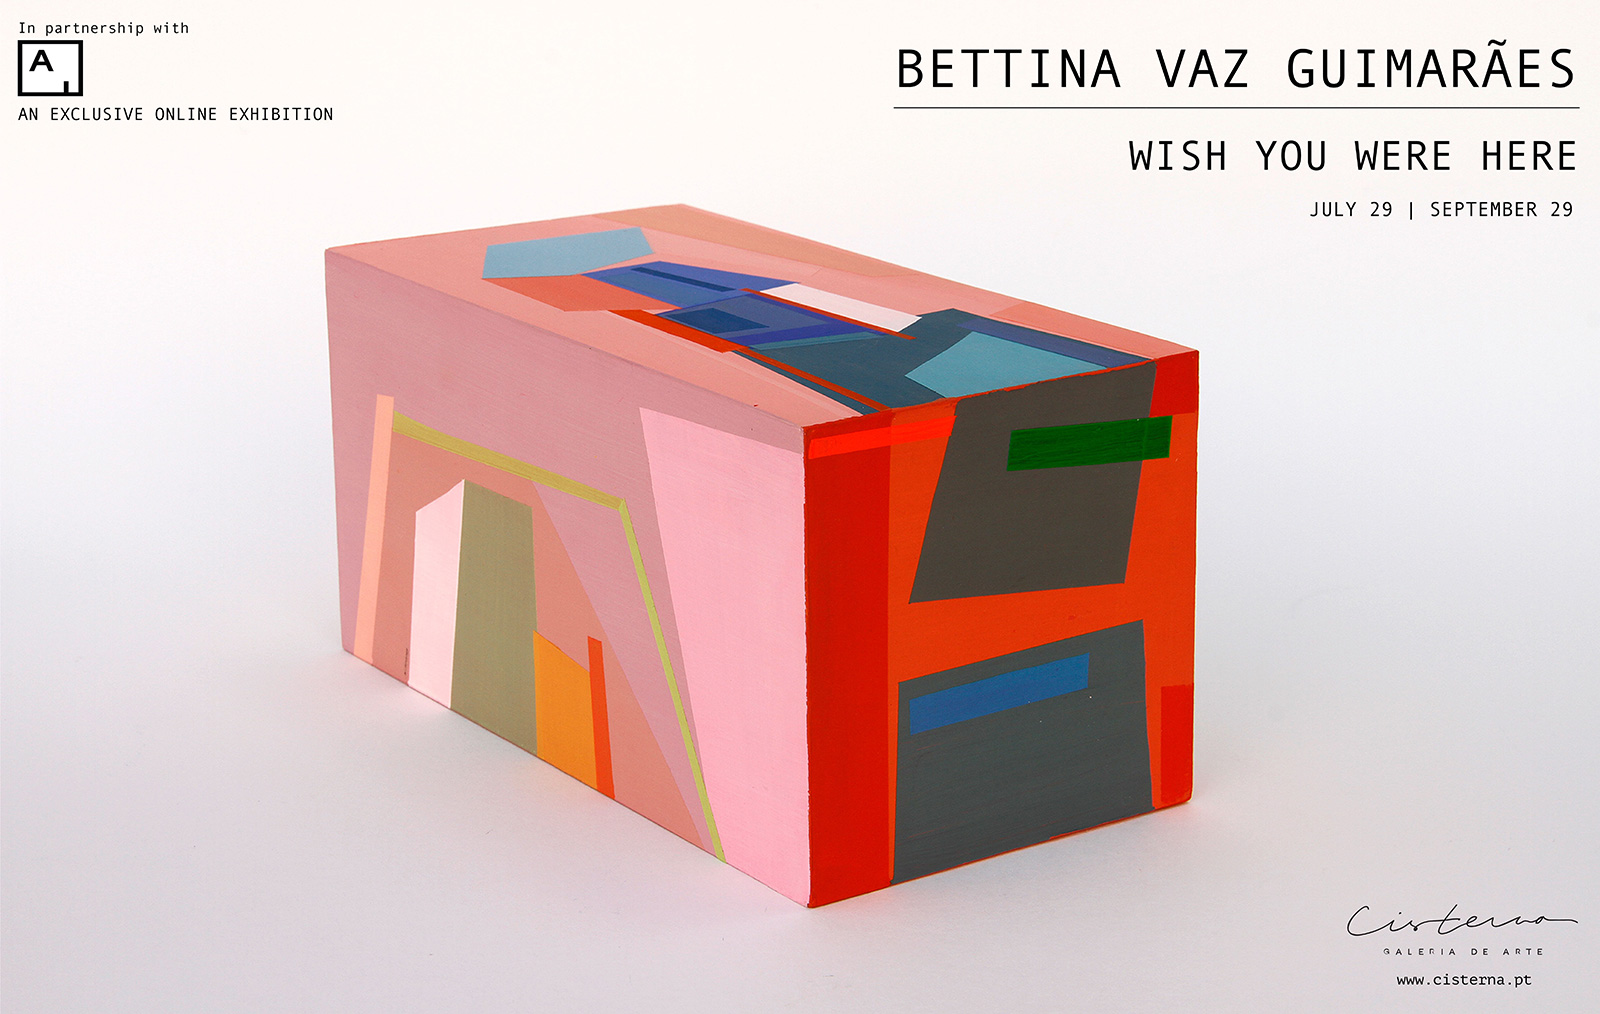 Bettina Vaz Guimarães | WISH YOU WERE HERE